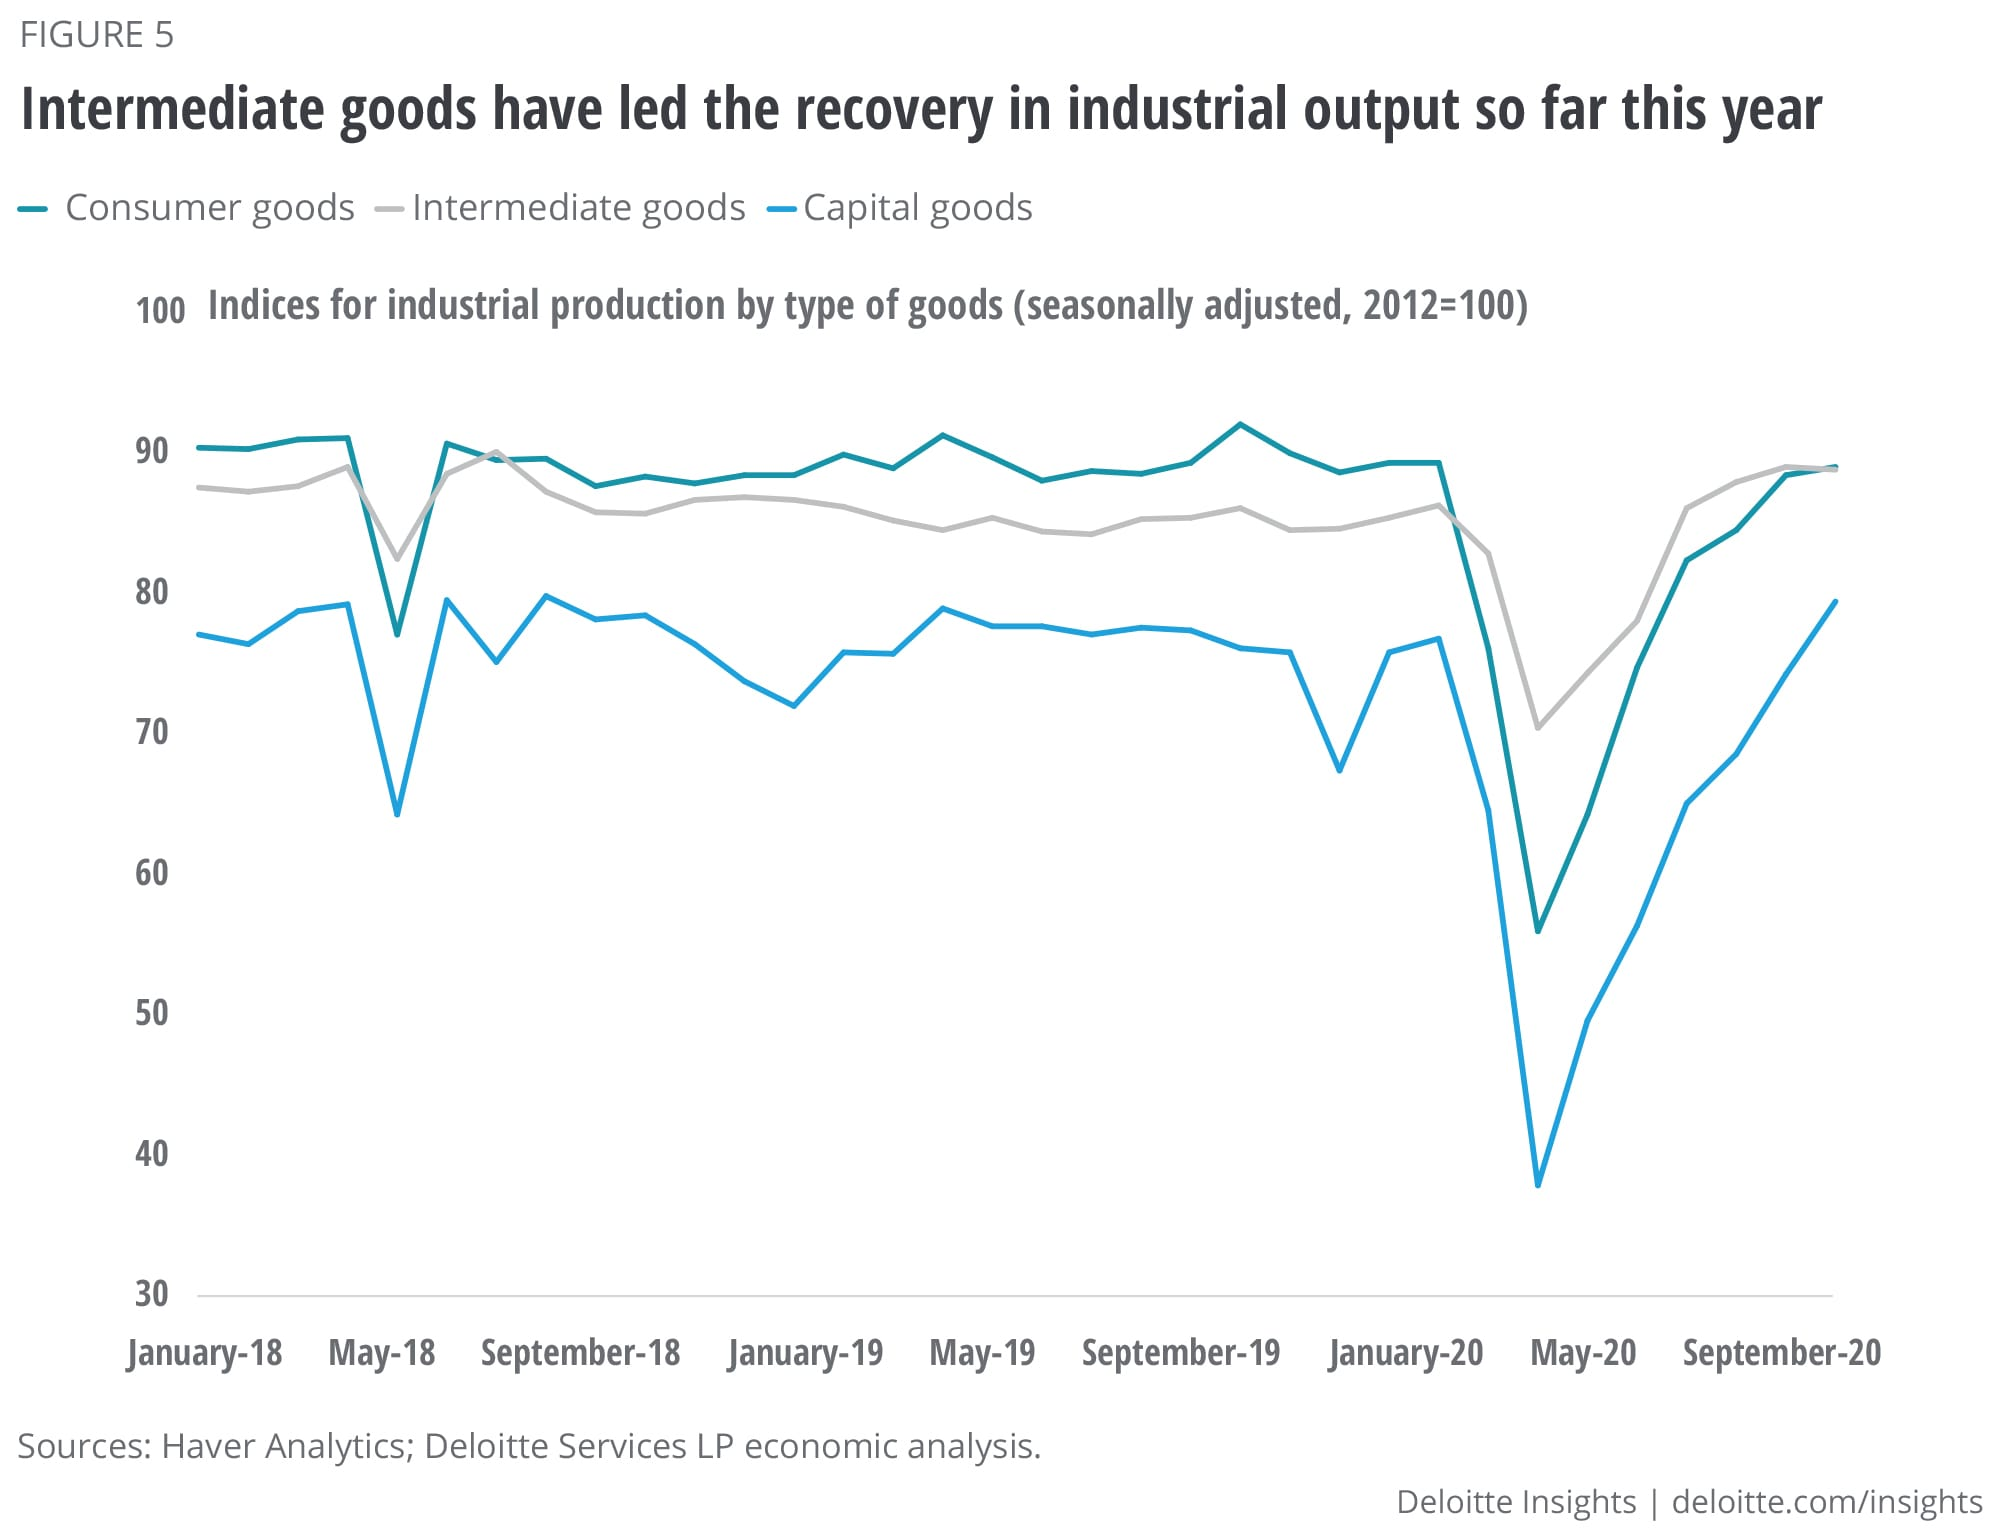 Intermediate goods have led the recovery in industrial output so far this year